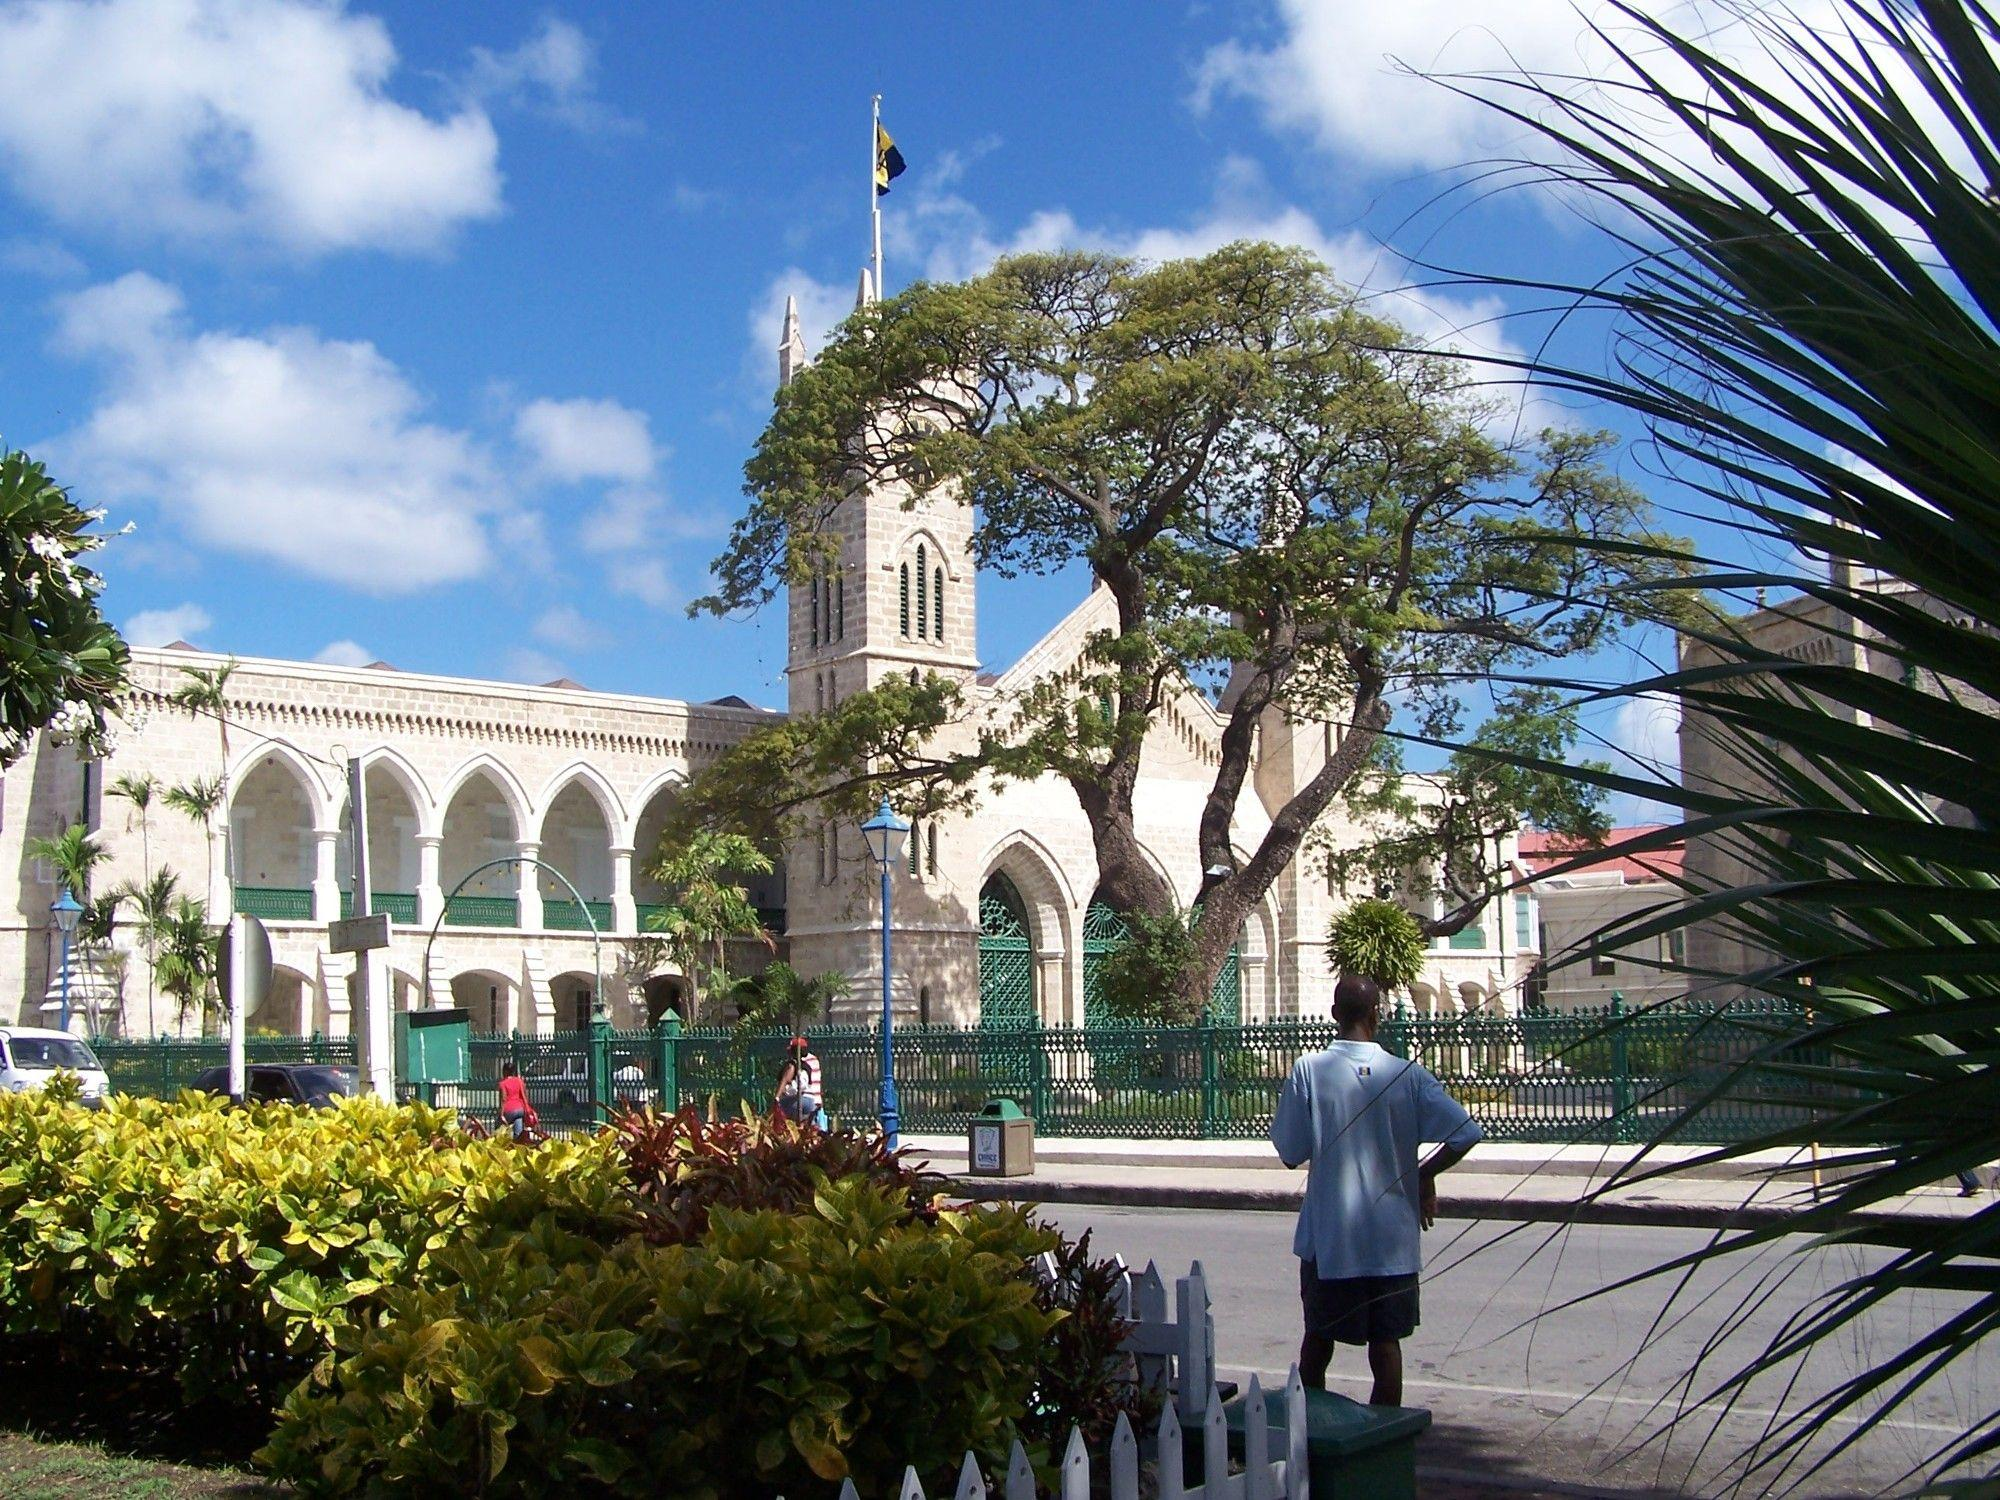 Bridgetown, Barbados - places of interest